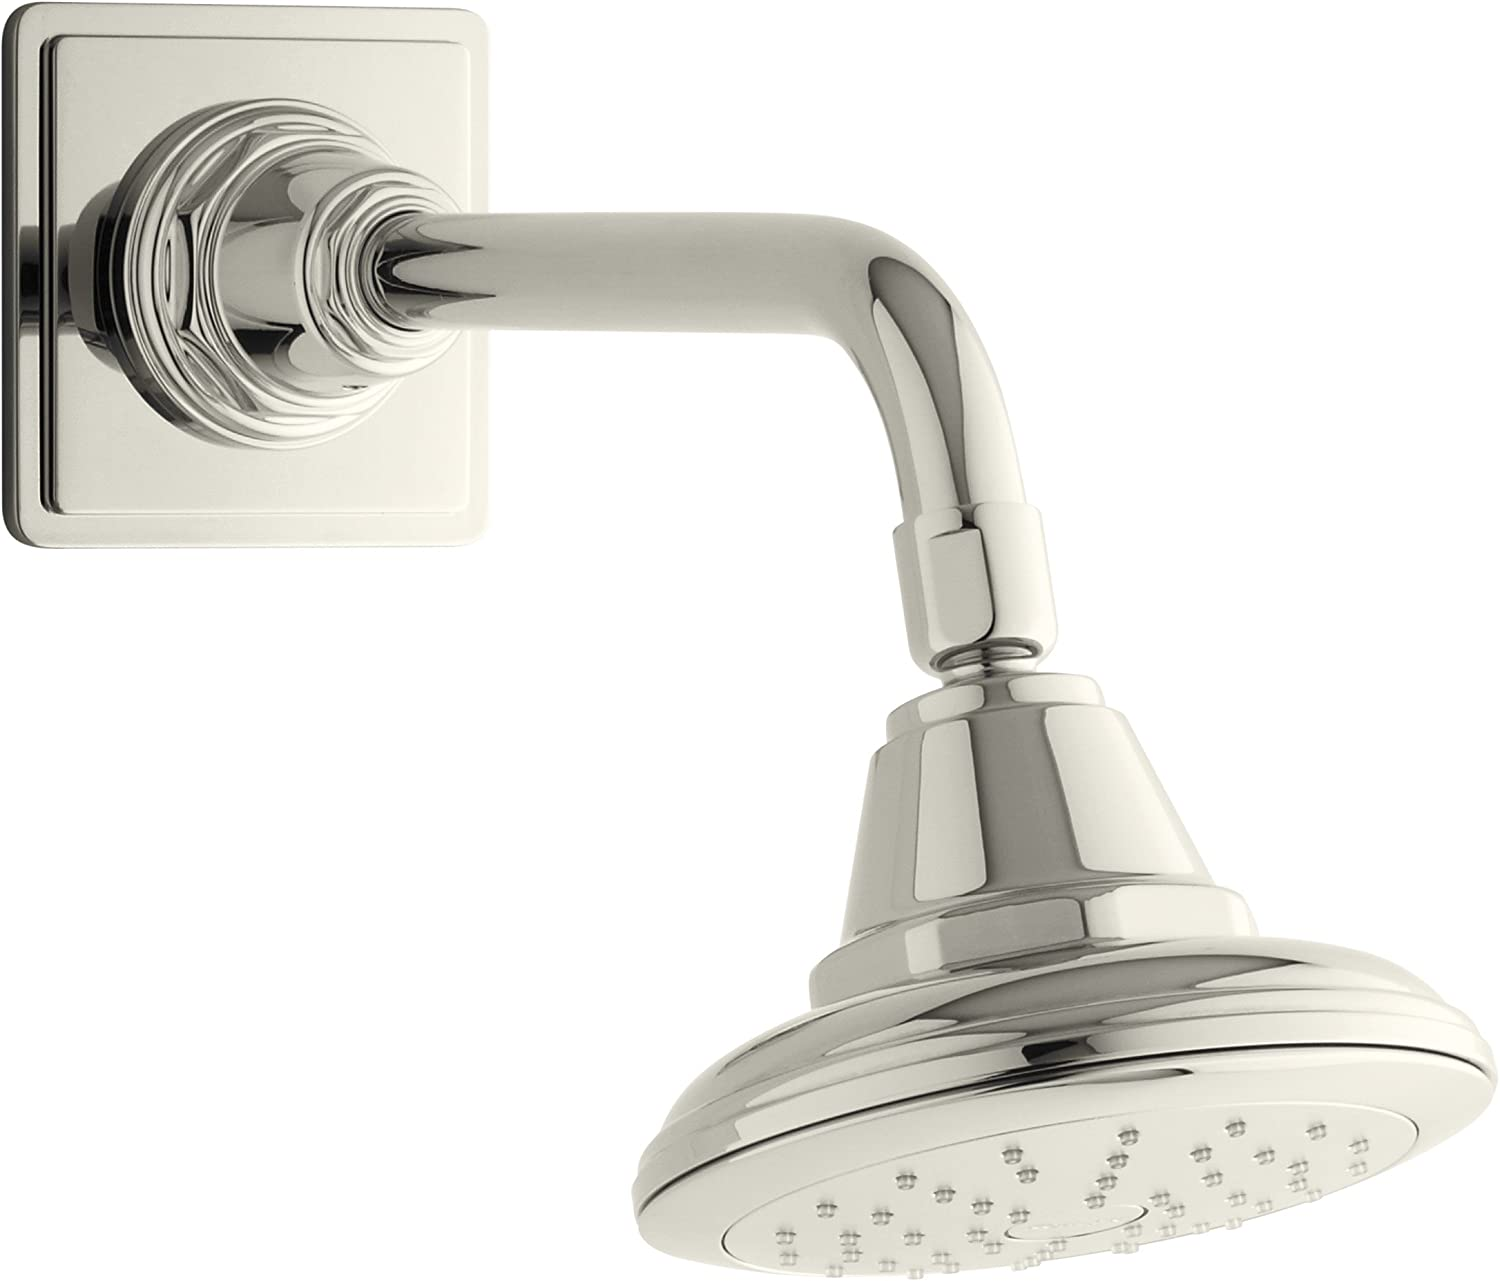 Kohler K-45417 Pinstripe 2.0 Gpm Single Function Shower Head, Less Arm And Escutcheon With Kata, Vibrant Polished Nickel